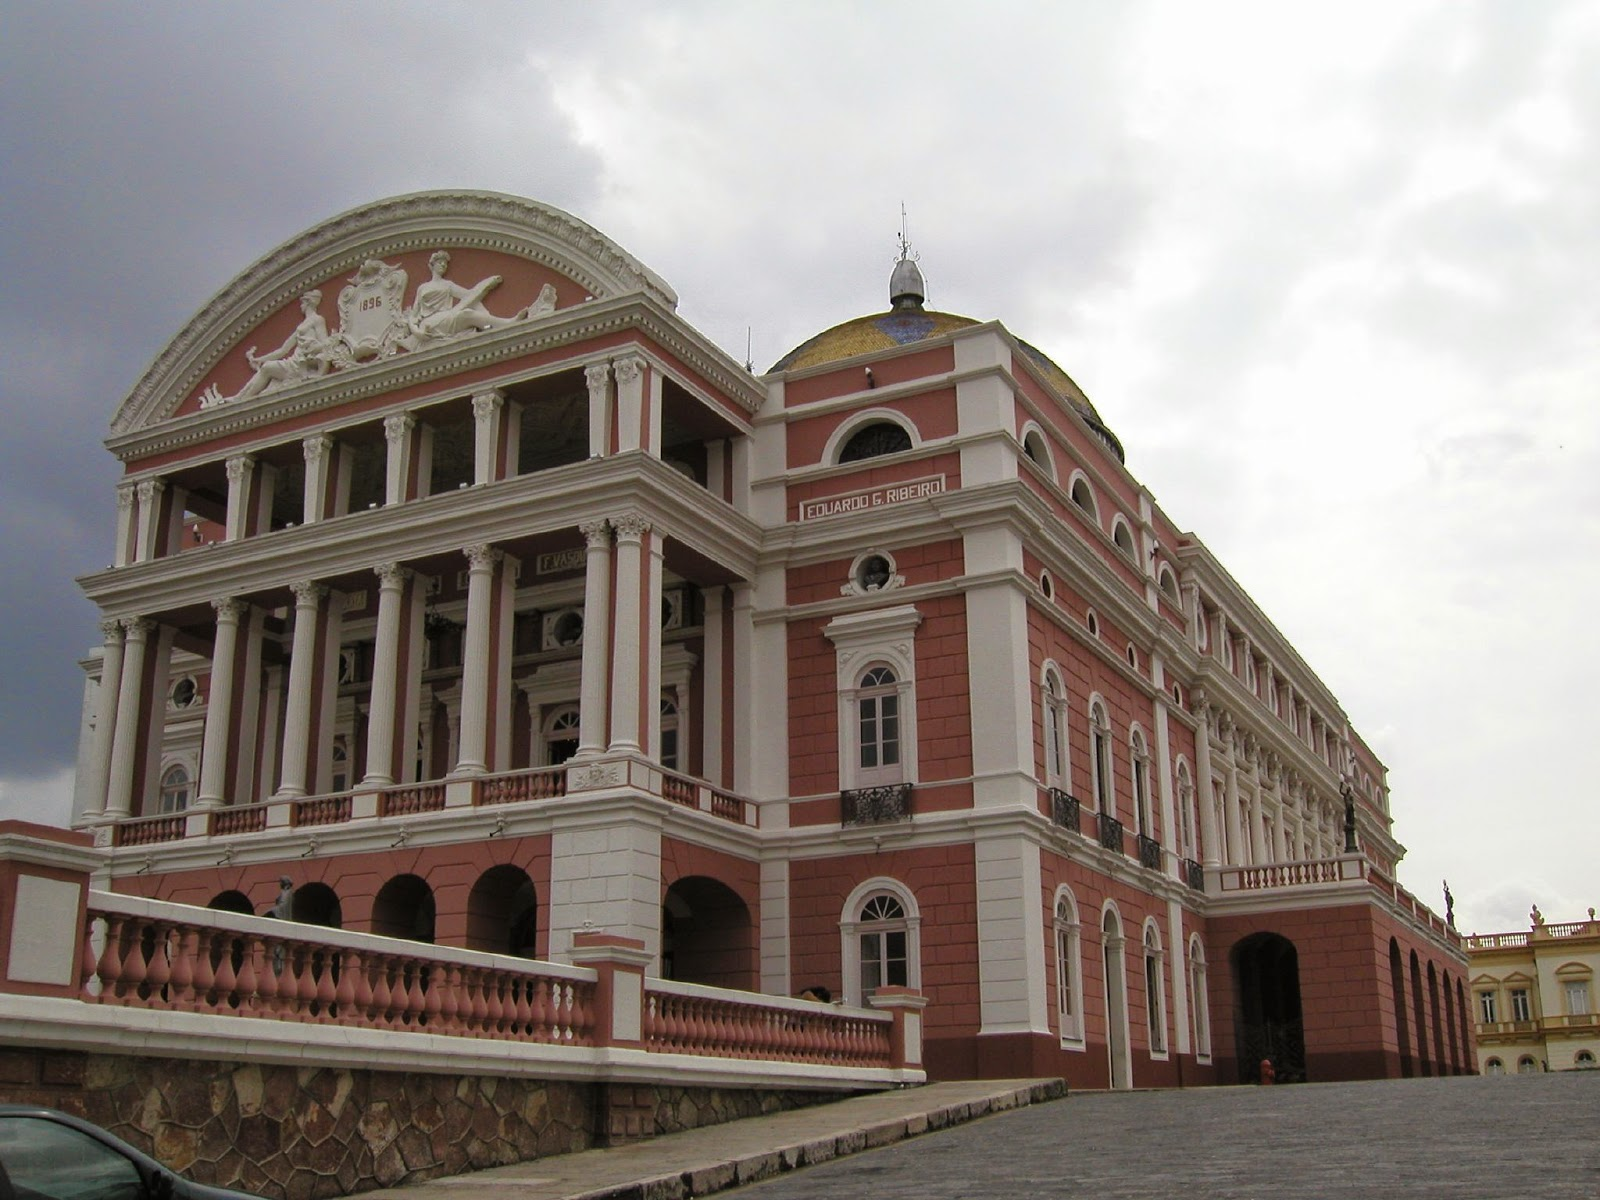 The Opera in Manaus, Brazil